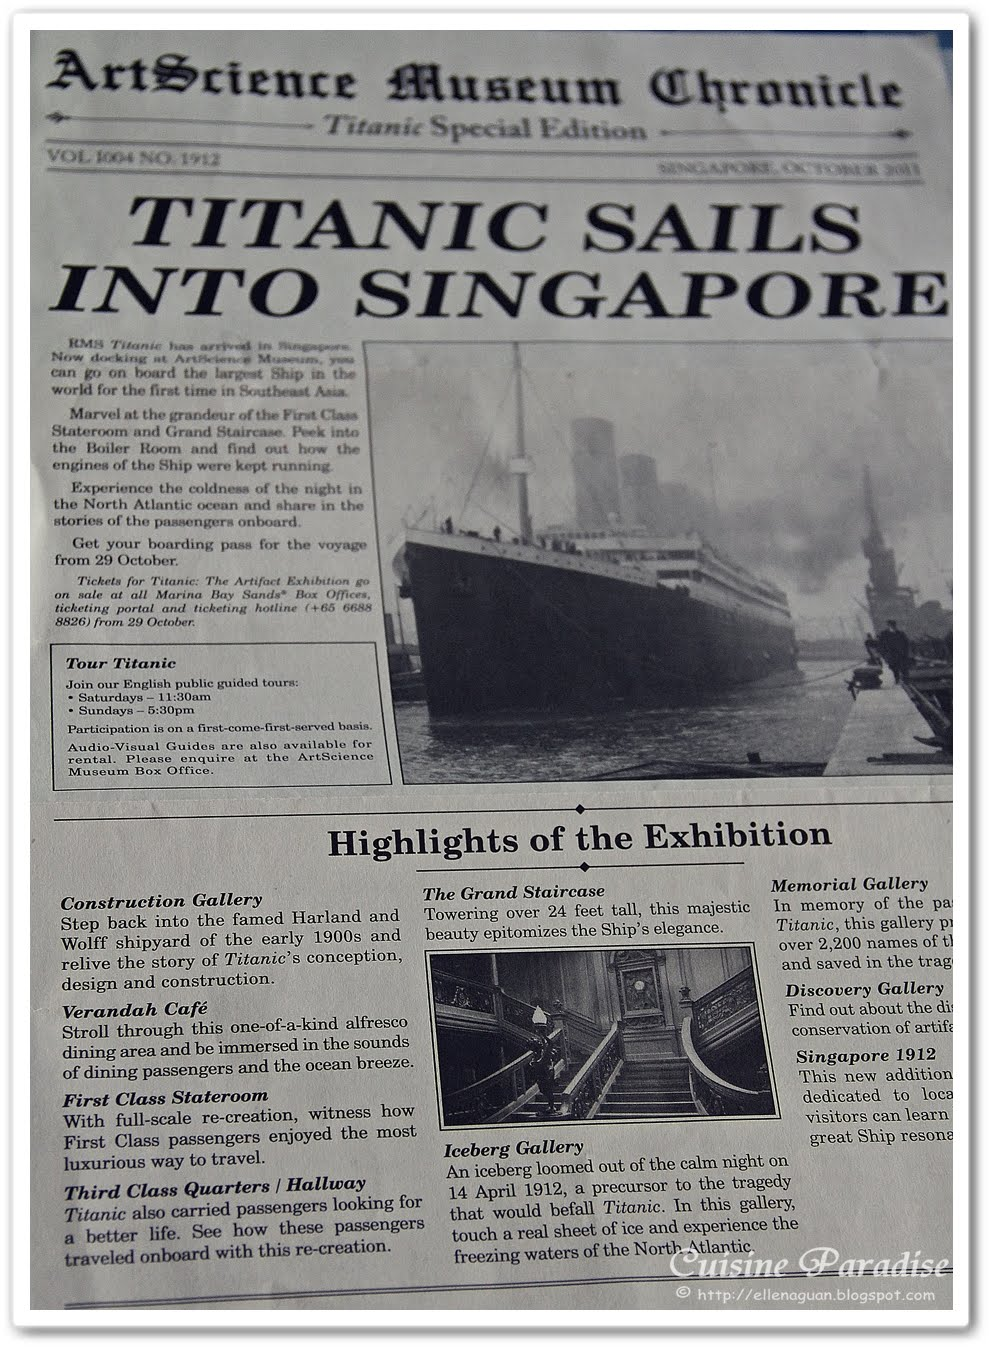 Cuisine Paradise | Eat, Shop And Travel: Titanic: The Artifact ...